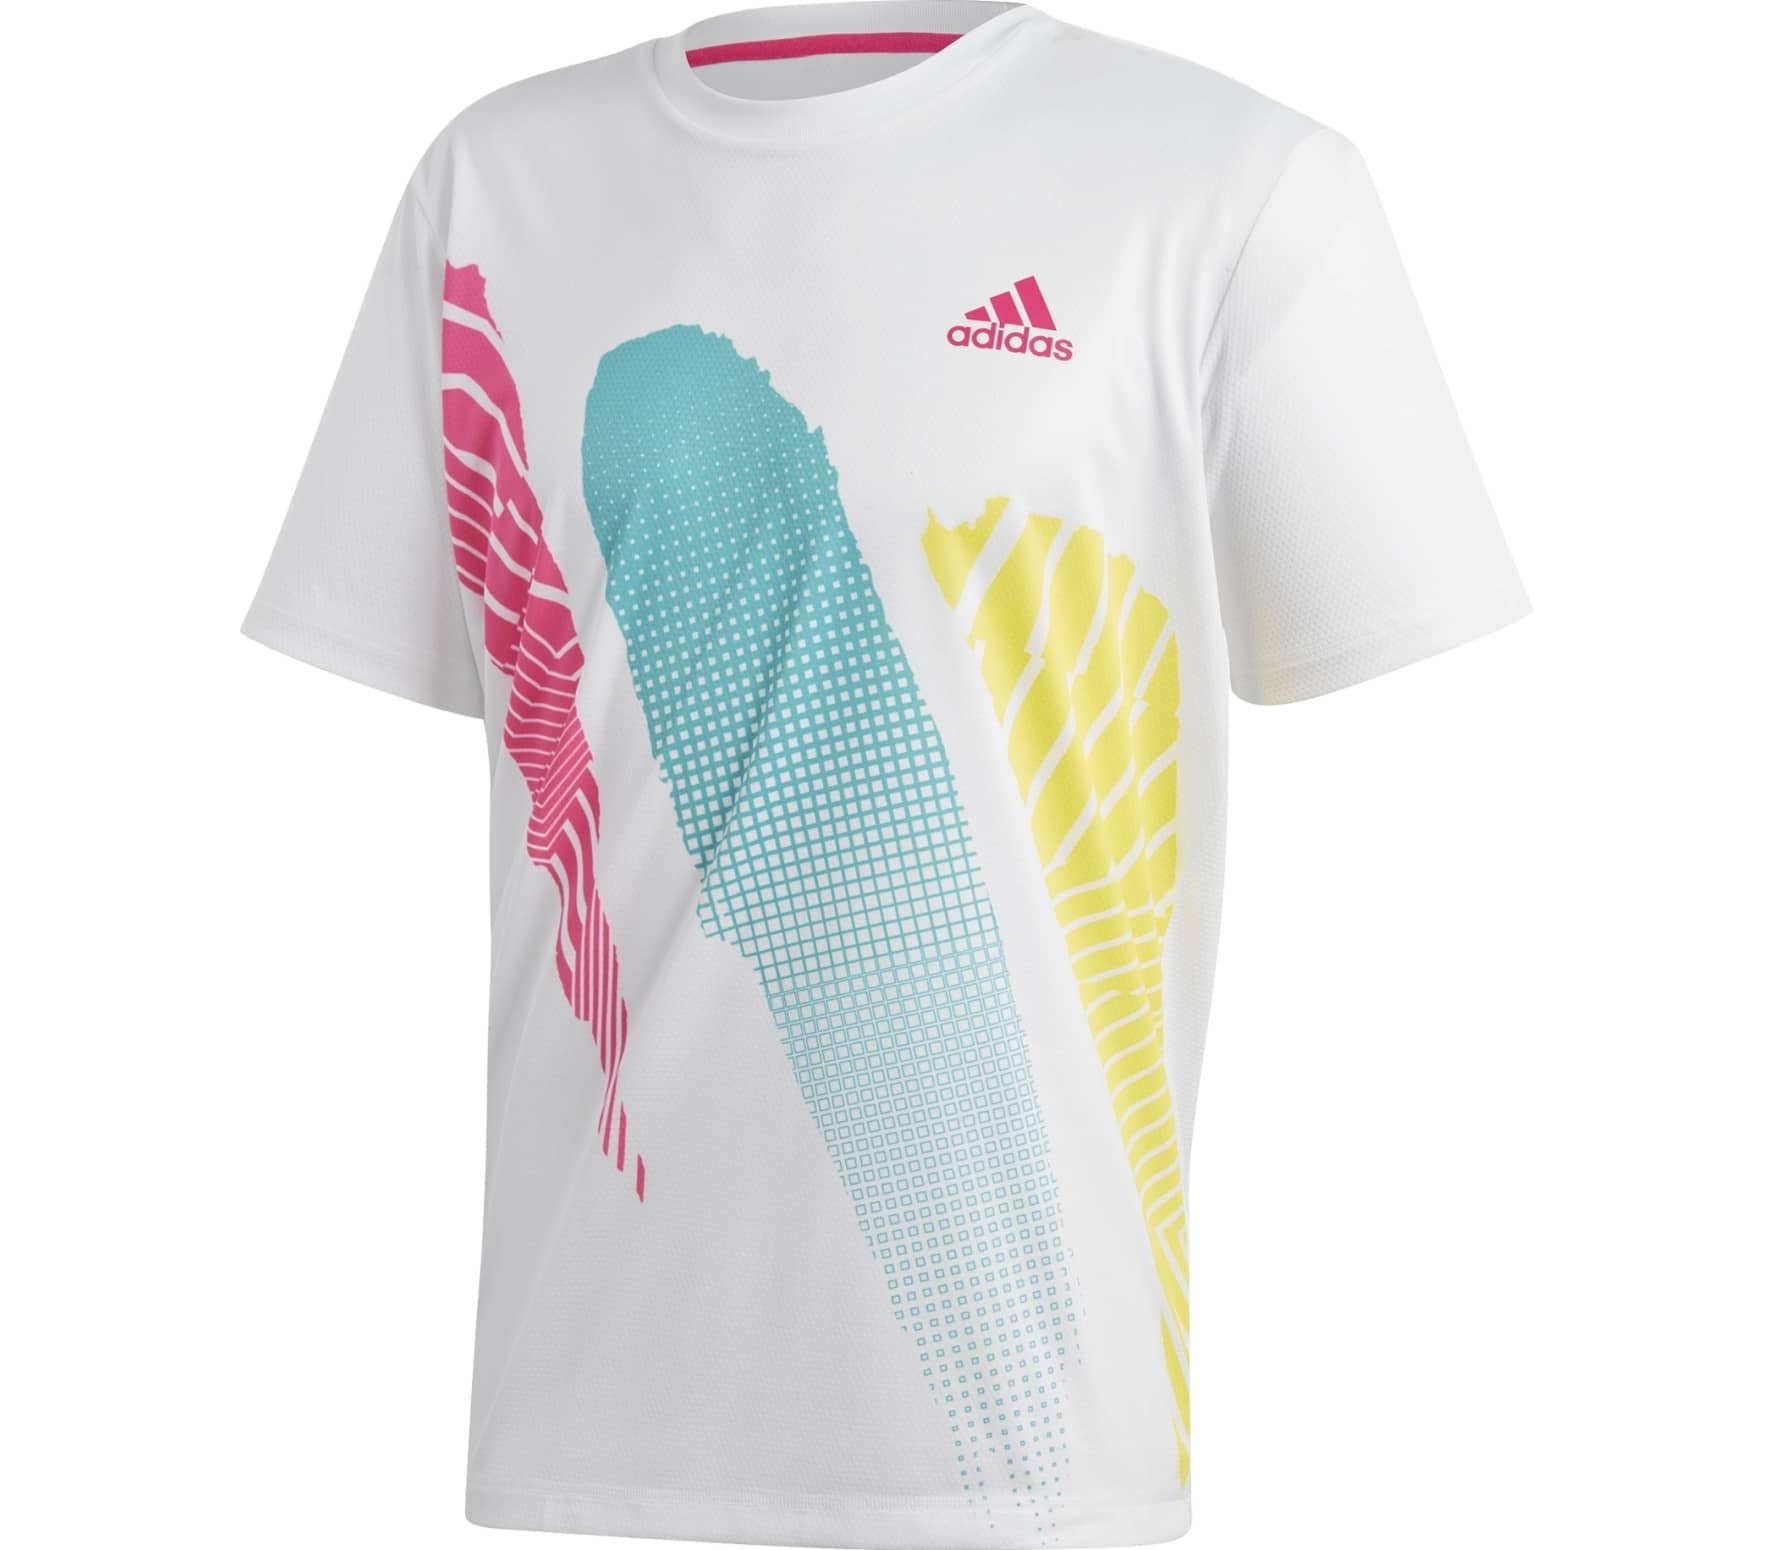 adidas performance Seasonal men's tennis top (white)